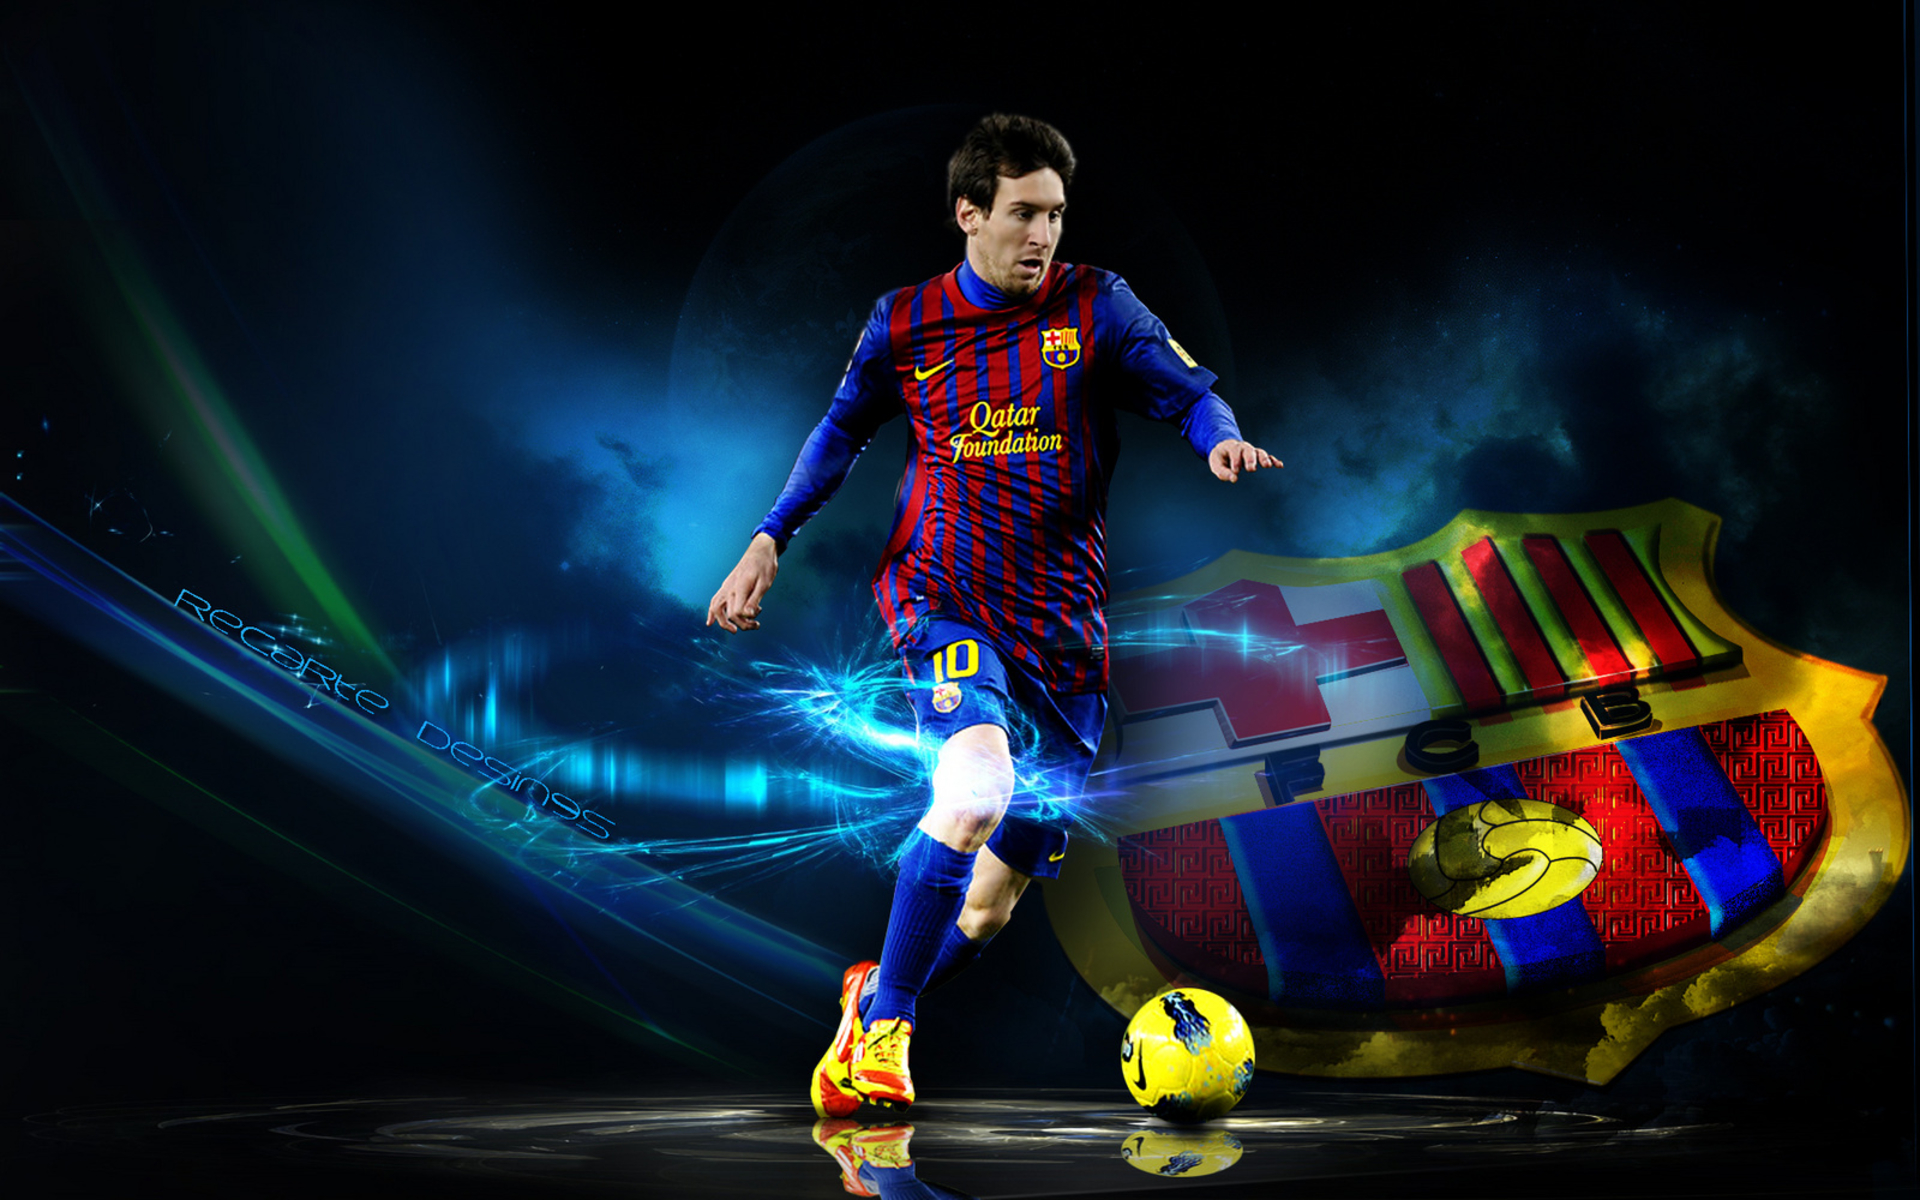 Download Football Hd Wallpapers For Pc Gallery Messi Futebol